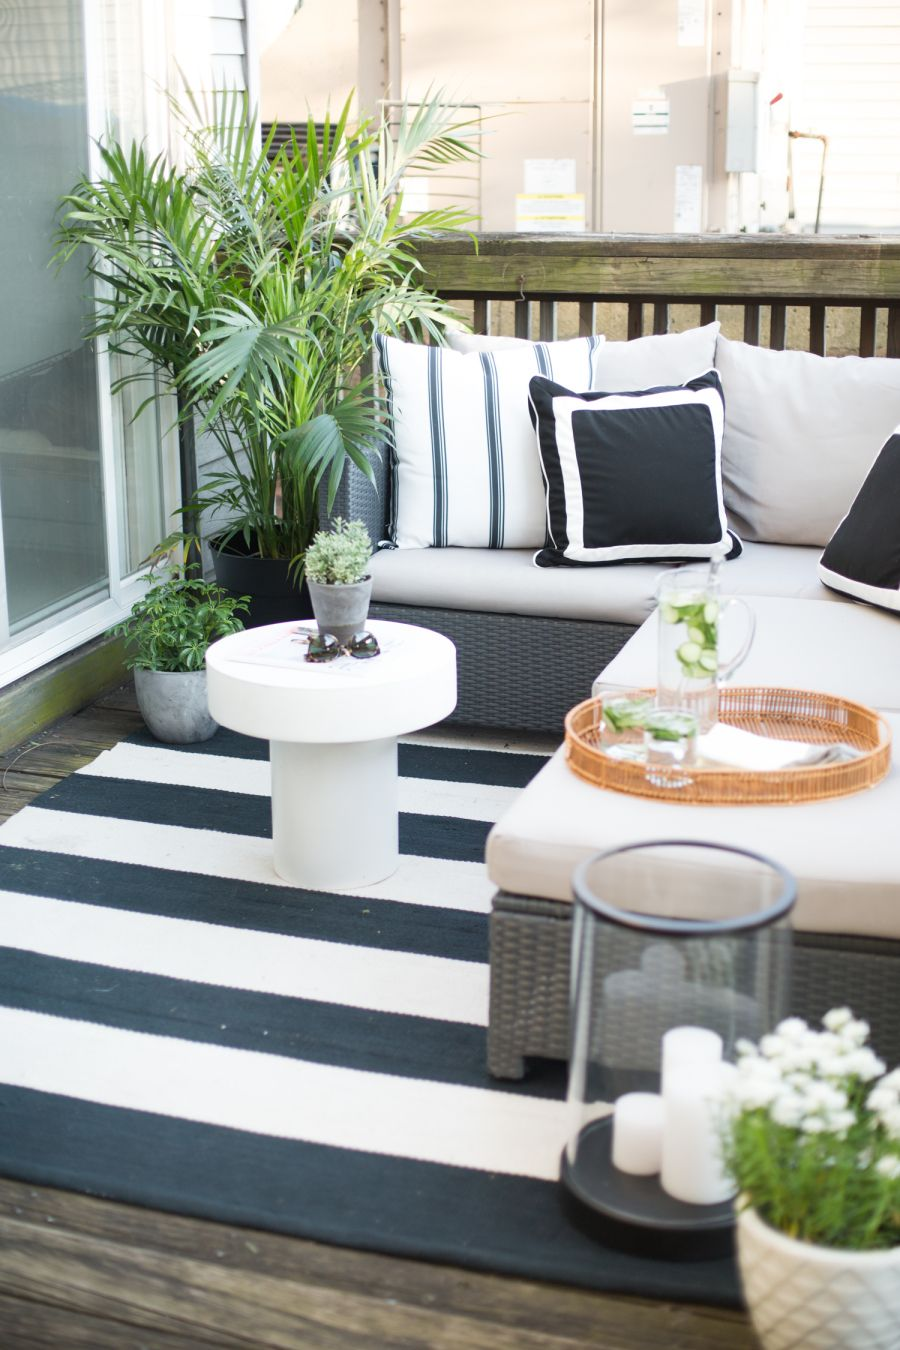 Design and Styling: Danielle Moss - http://www.stylemepretty.com/portfolio/danielle-moss Read More on SMP: http://www.stylemepretty.com/living/2016/06/07/why-decorating-with-neutrals-will-never-ever-go-out-of-style/